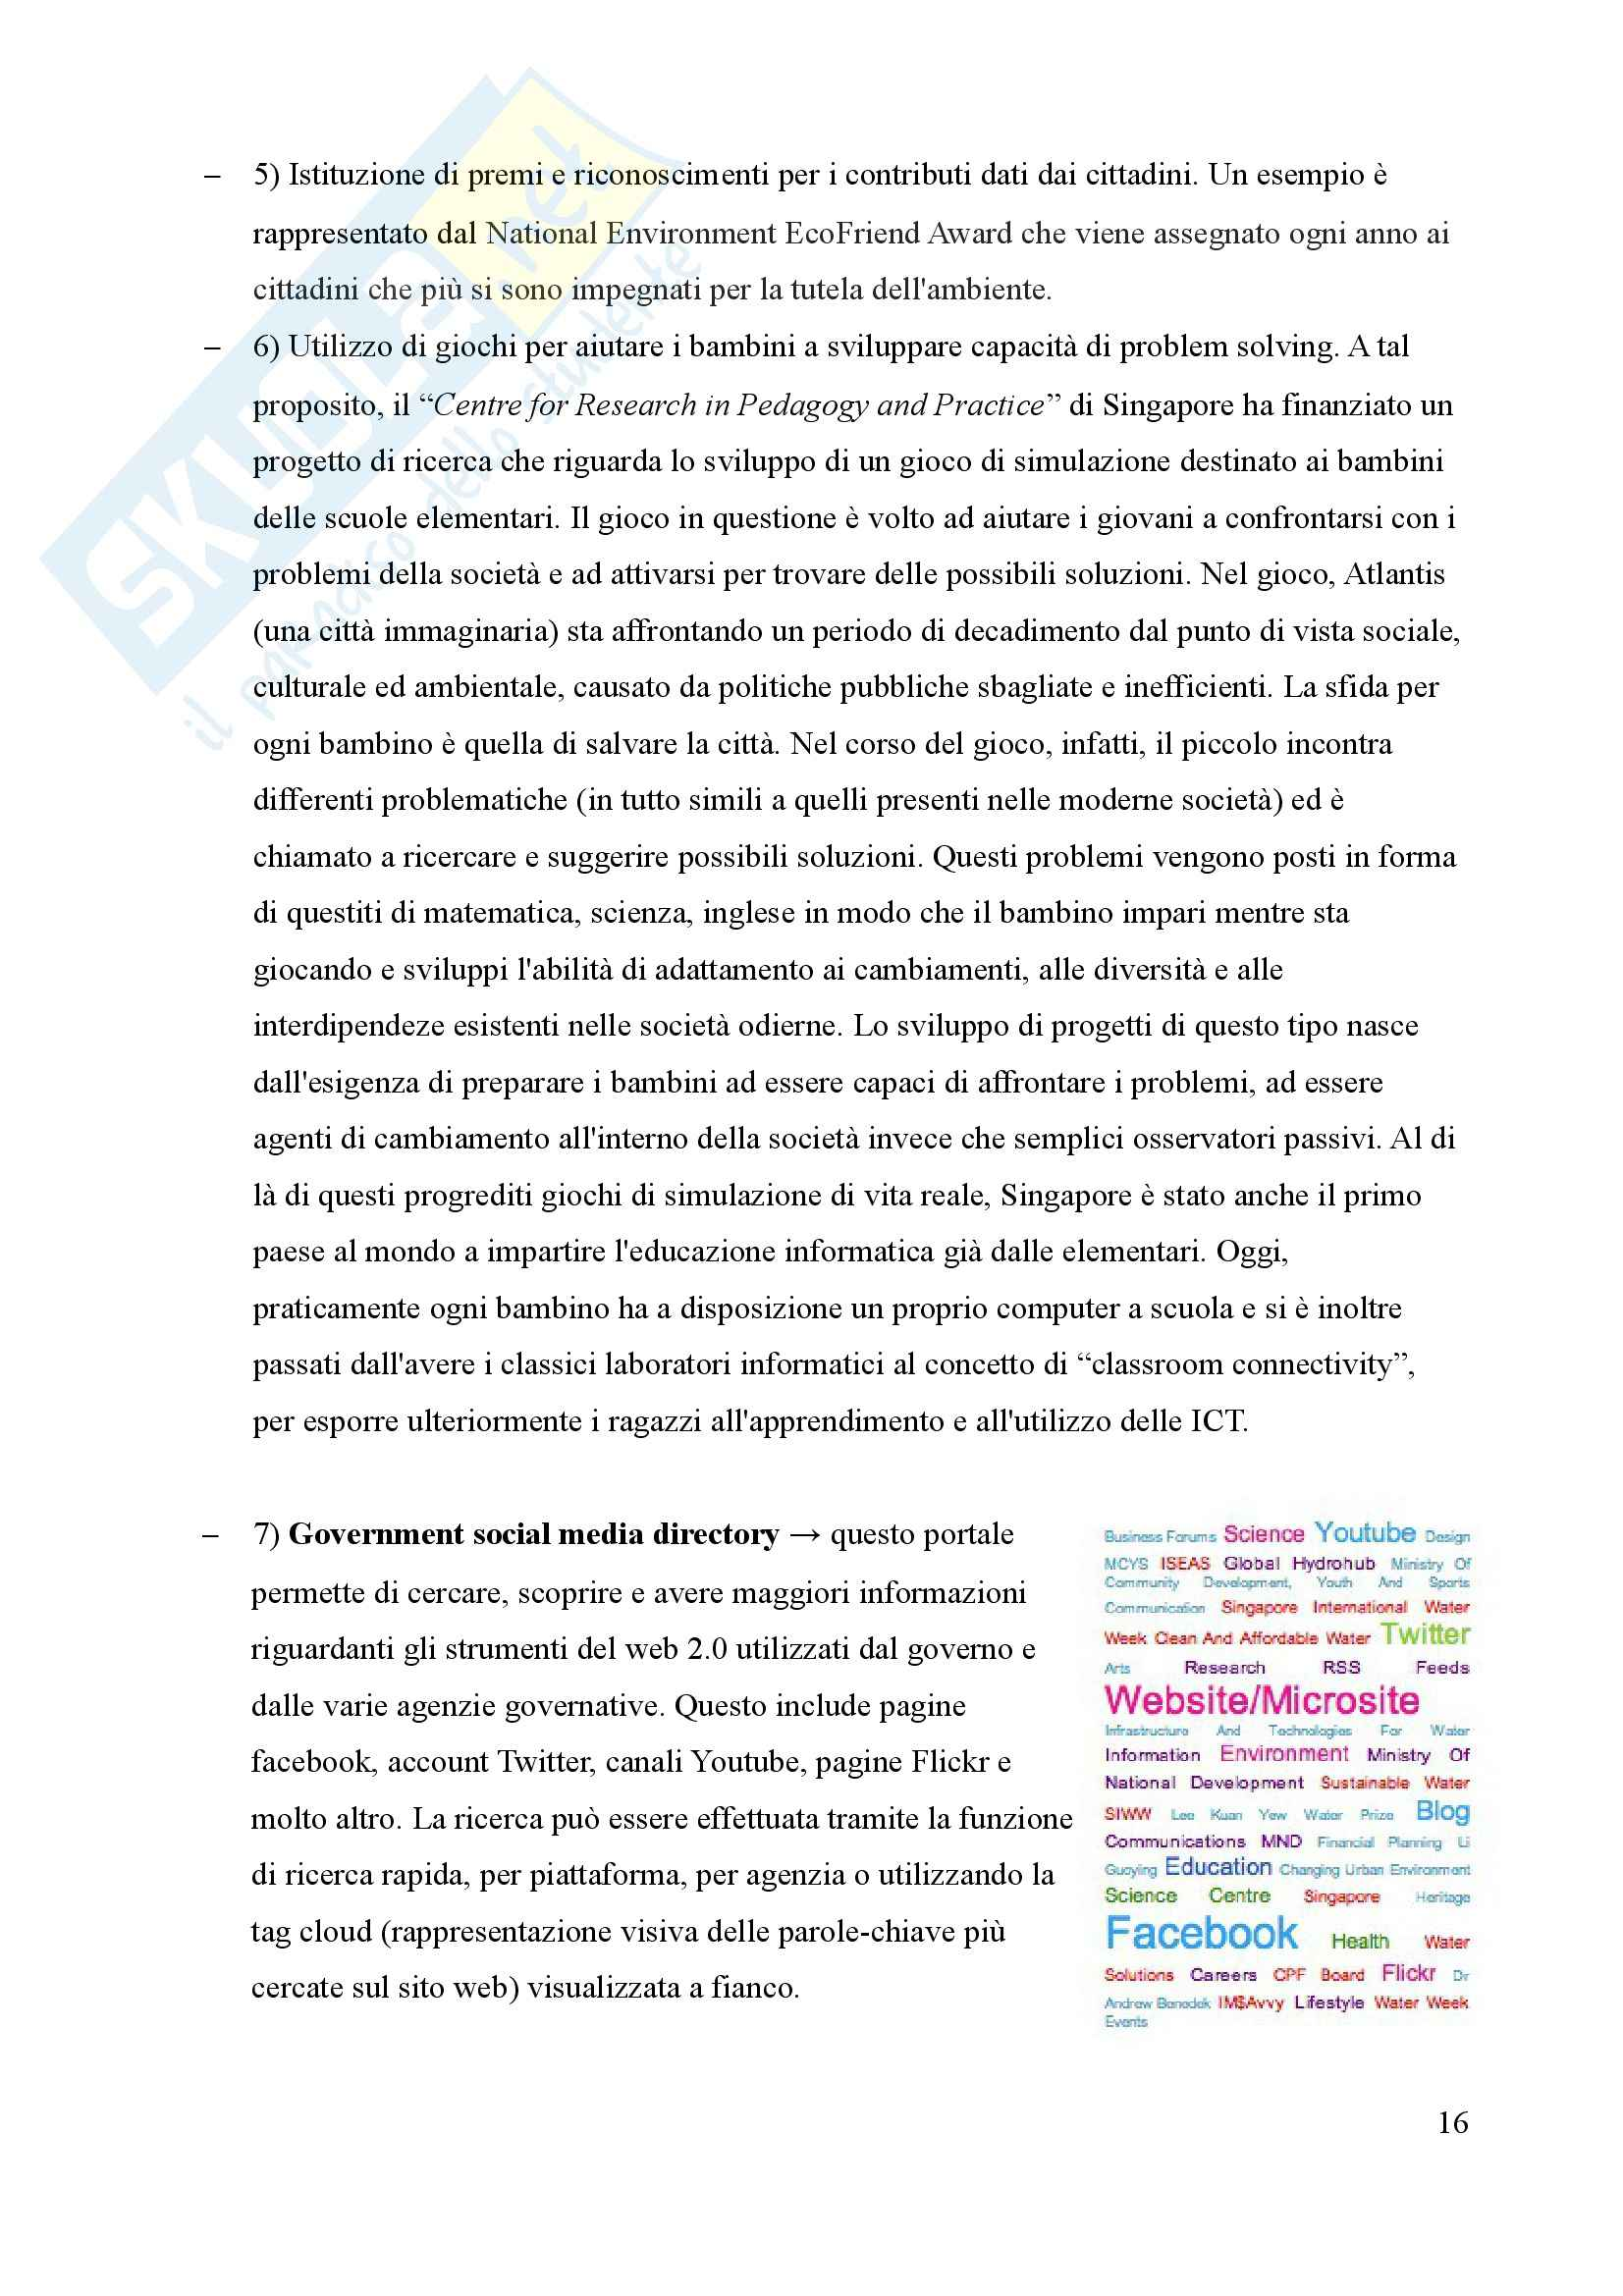 Tesi, Smart Cities: due casi a confronto Pag. 16